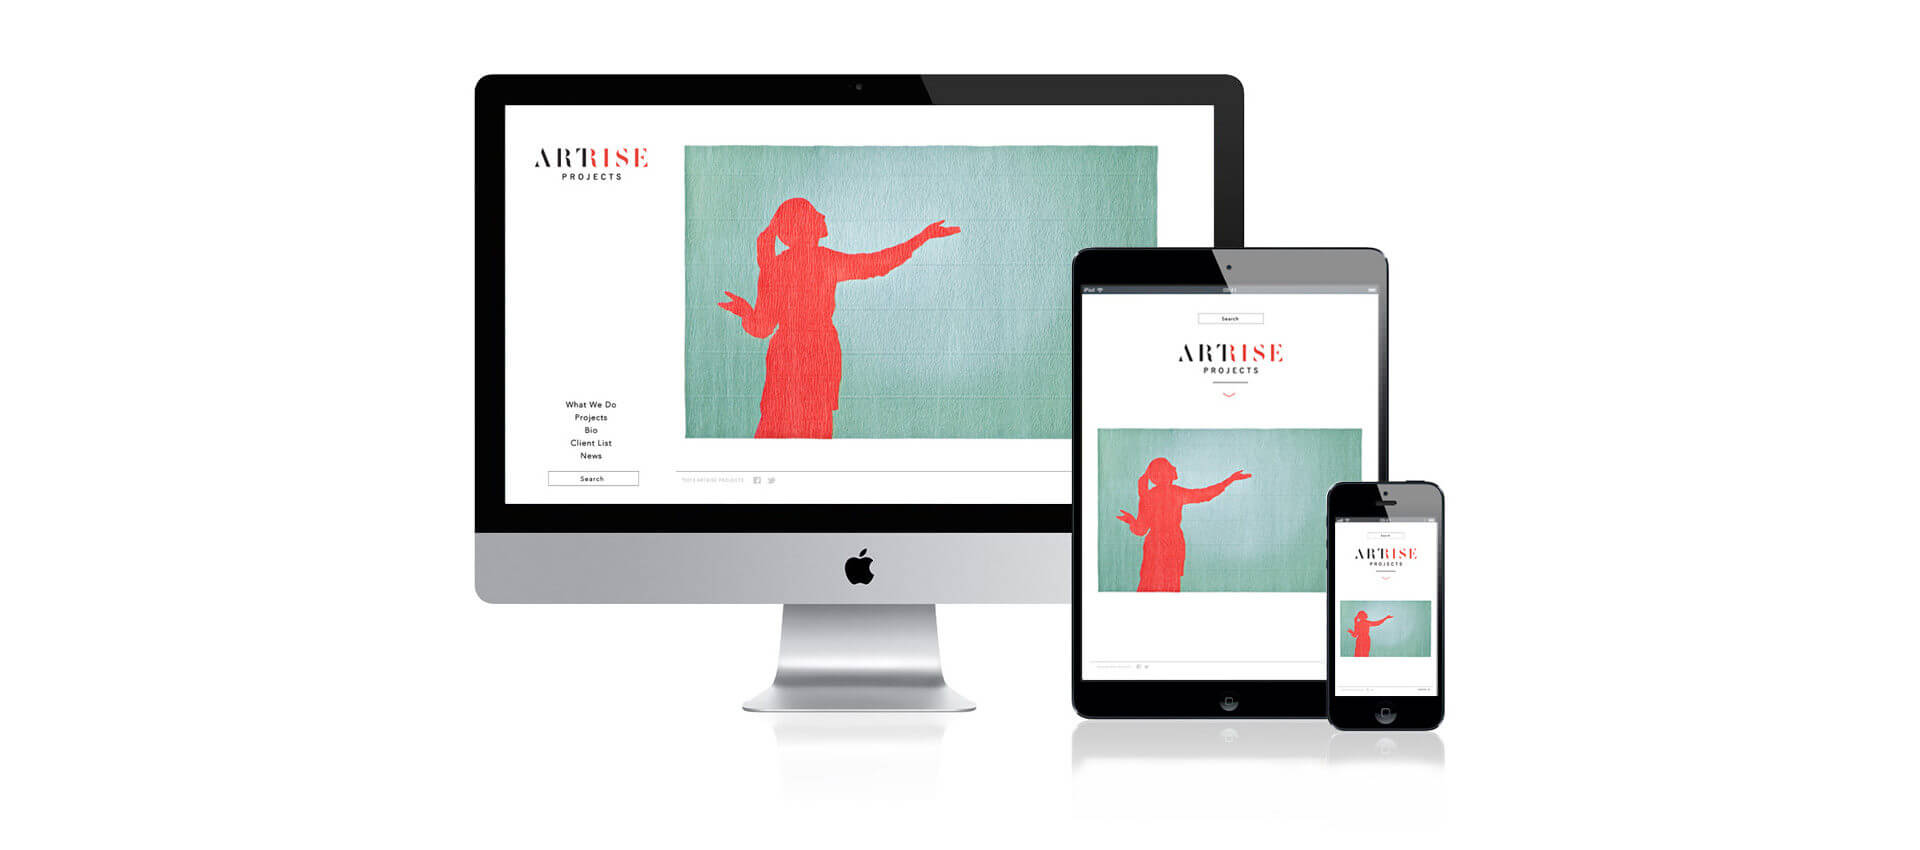 Artrise homepage with red figure silhouette shown on desktop, tablet, and phone